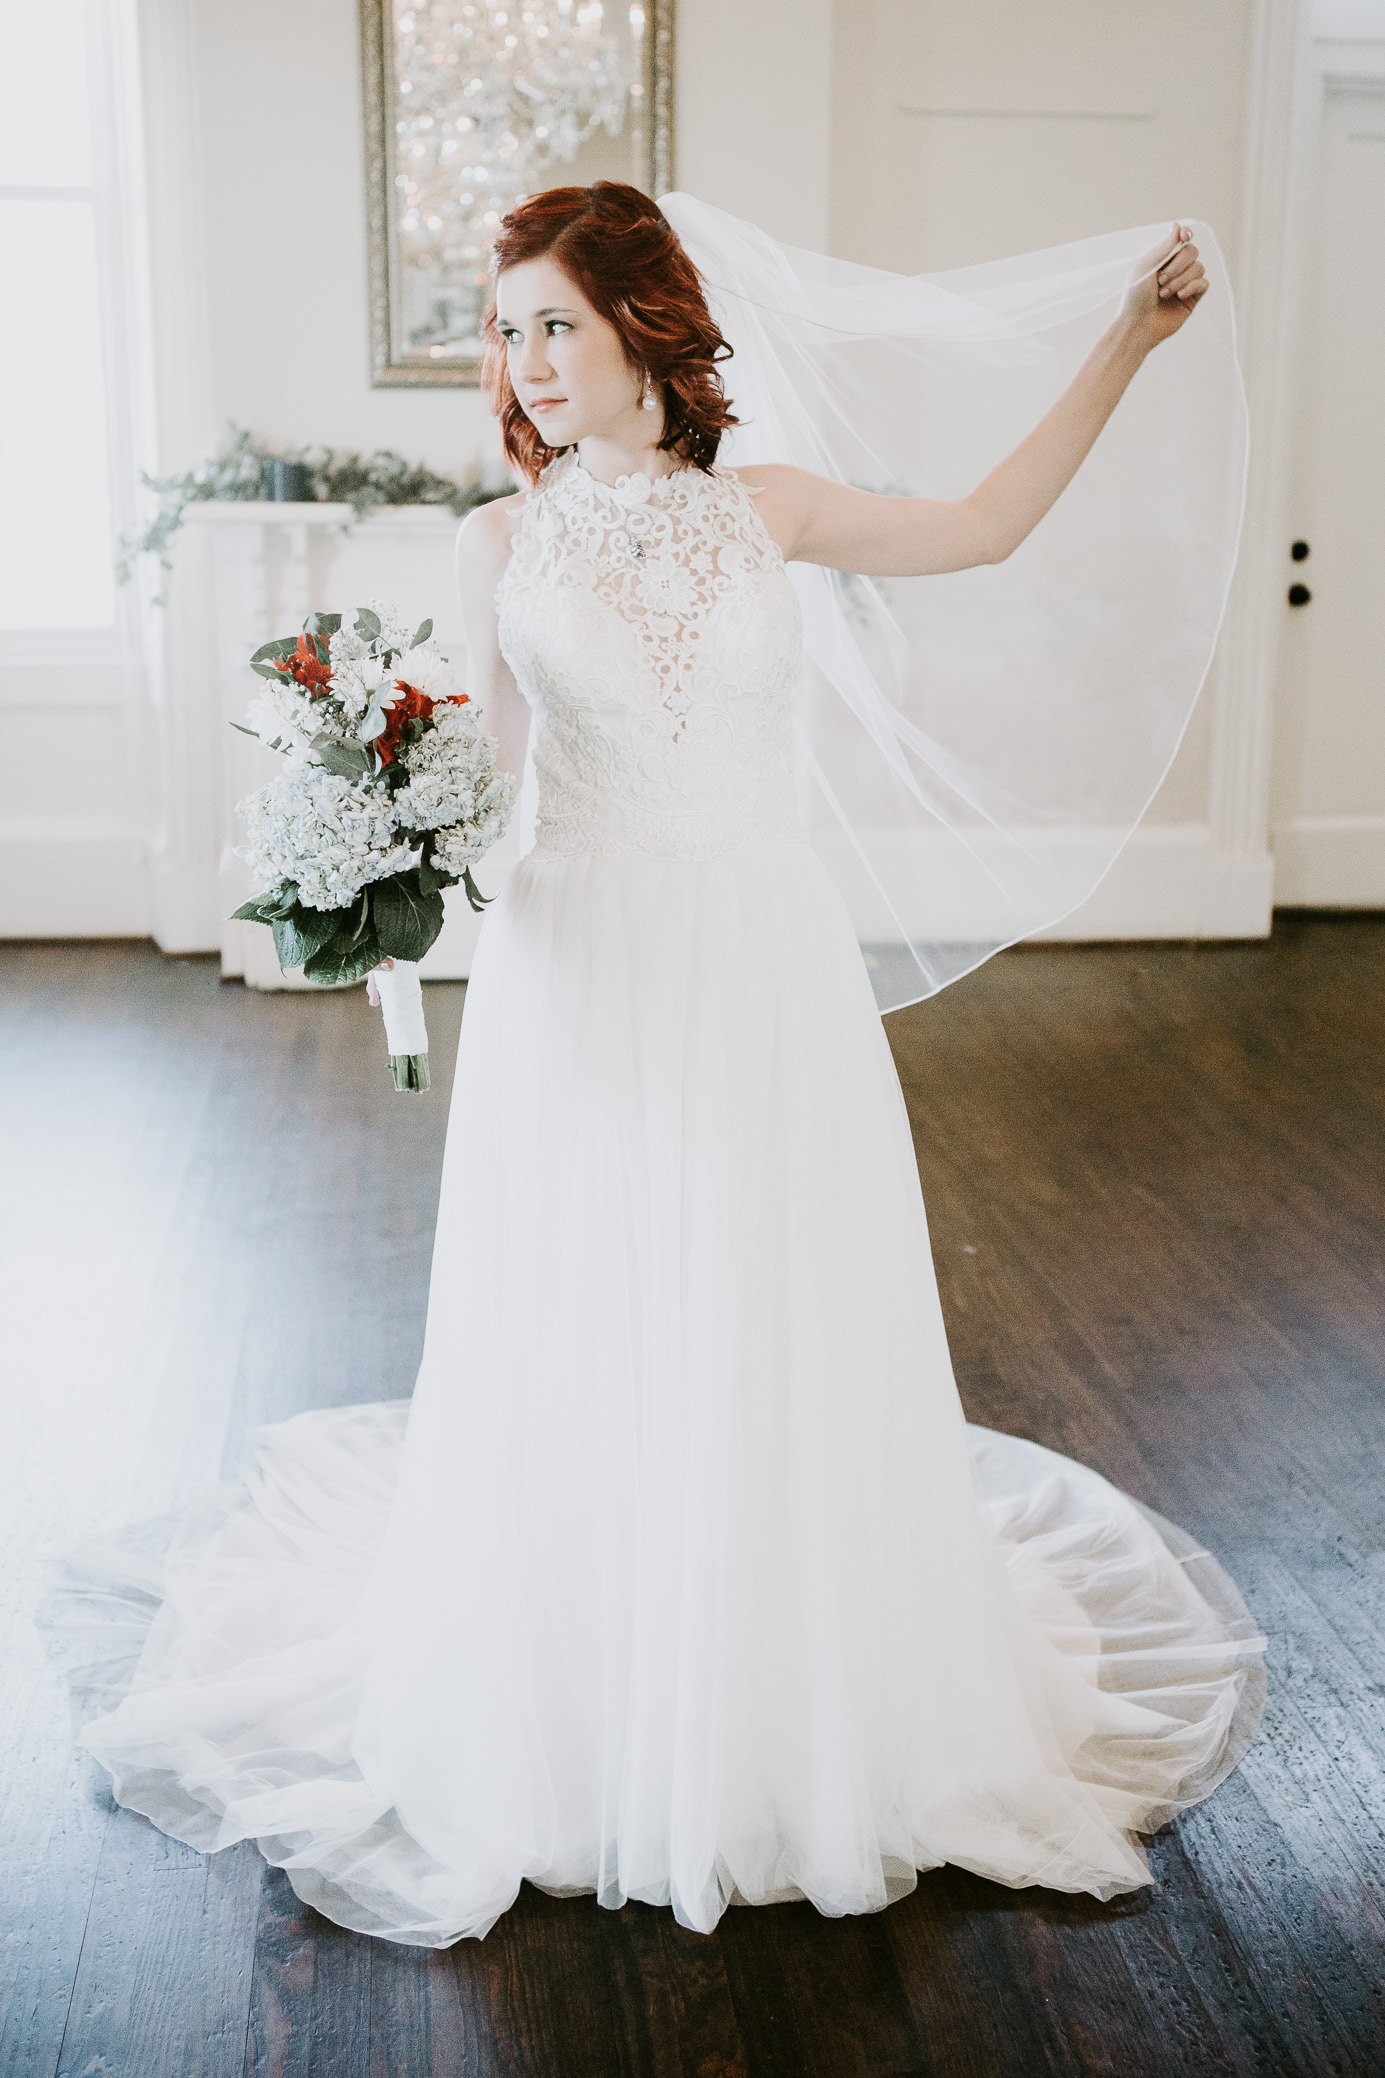 Tuscaloosa, Alabama bridal photography at Historic Drish House by David A. Smith of DSmithImages Wedding Photography, Portraits, and Events in the Birmingham, Alabama area.